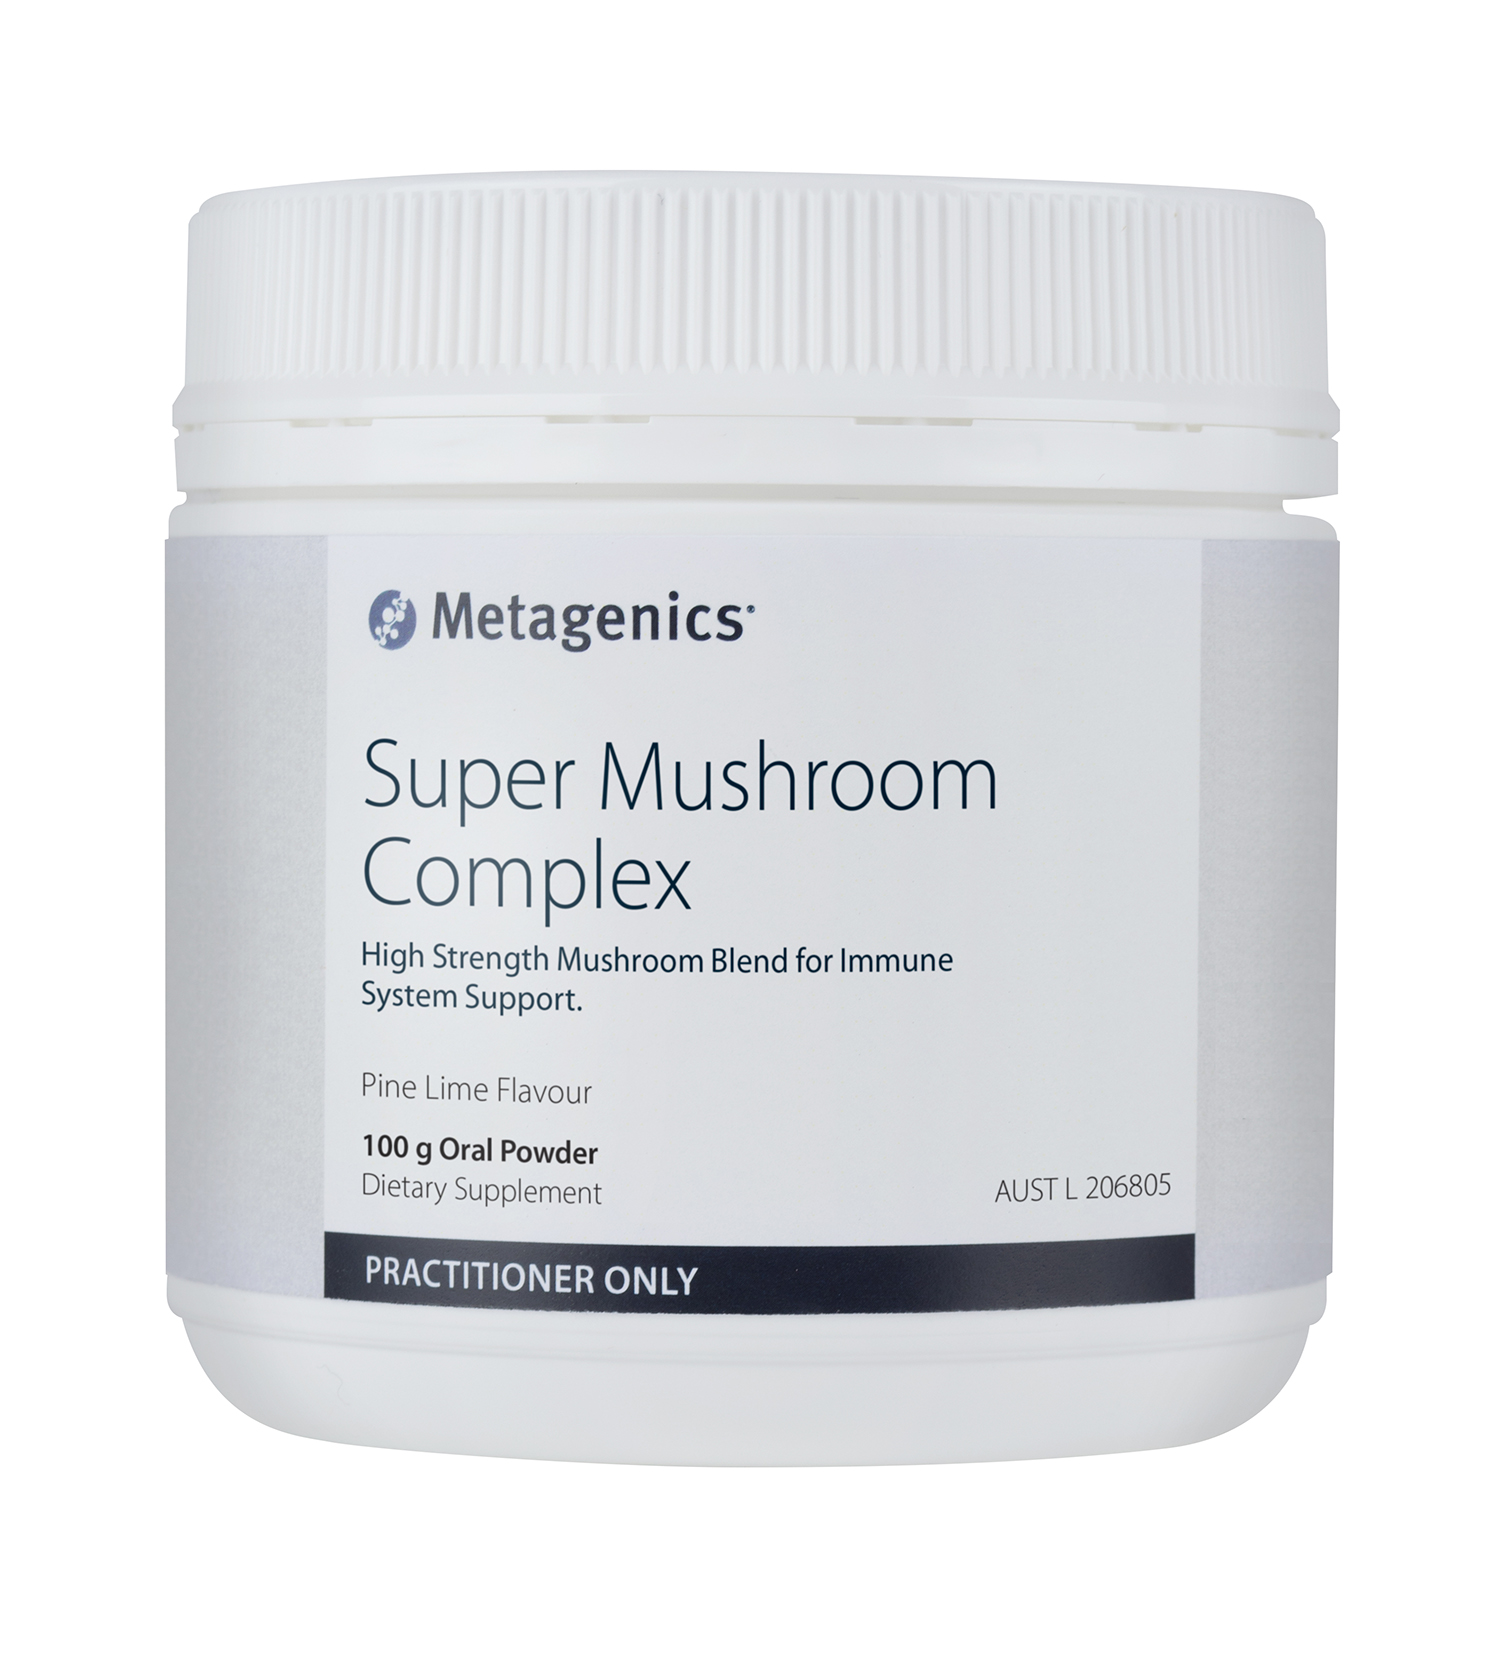 HIGH STRENGTH MUSHROOM BLEND FOR IMMUNE SYSTEM SUPPORT.